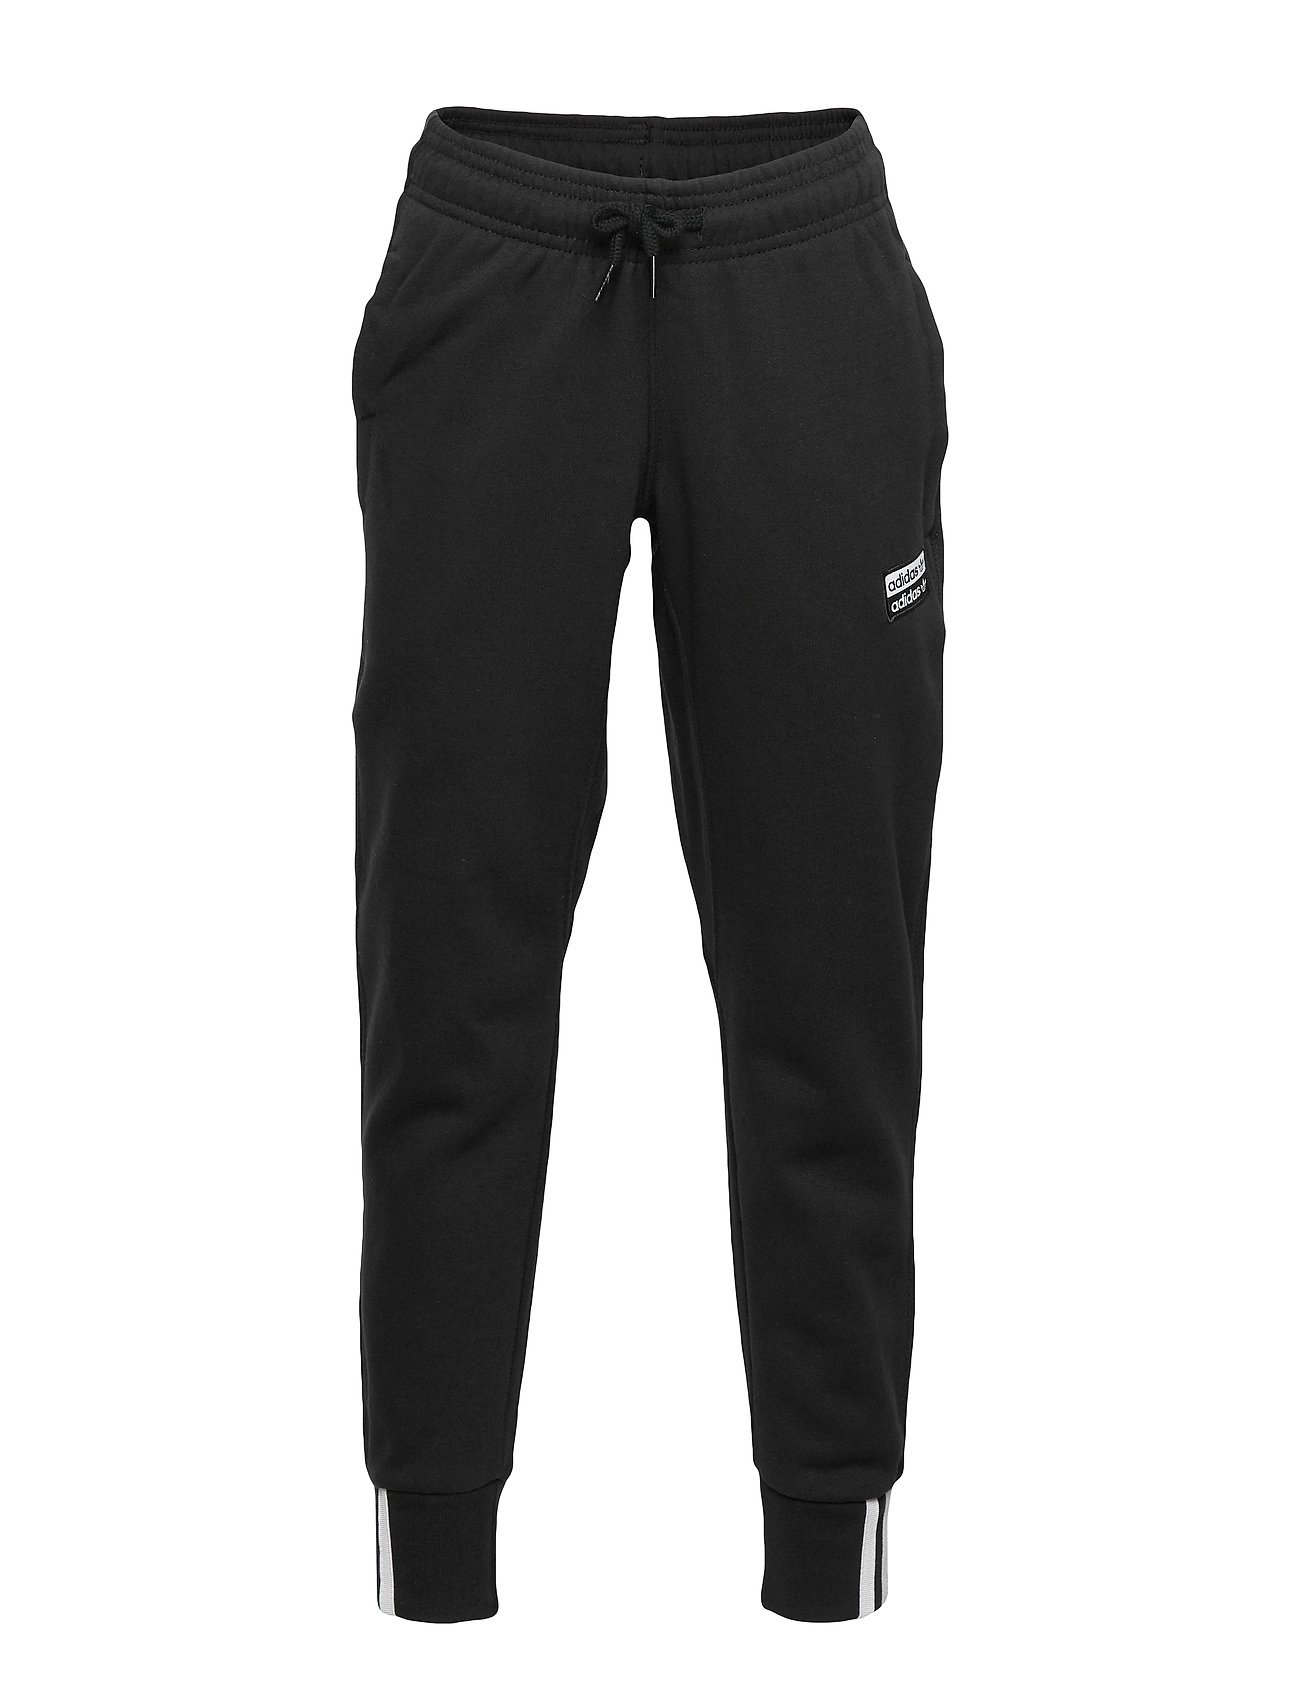 adidas Originals PANTS - BLACK